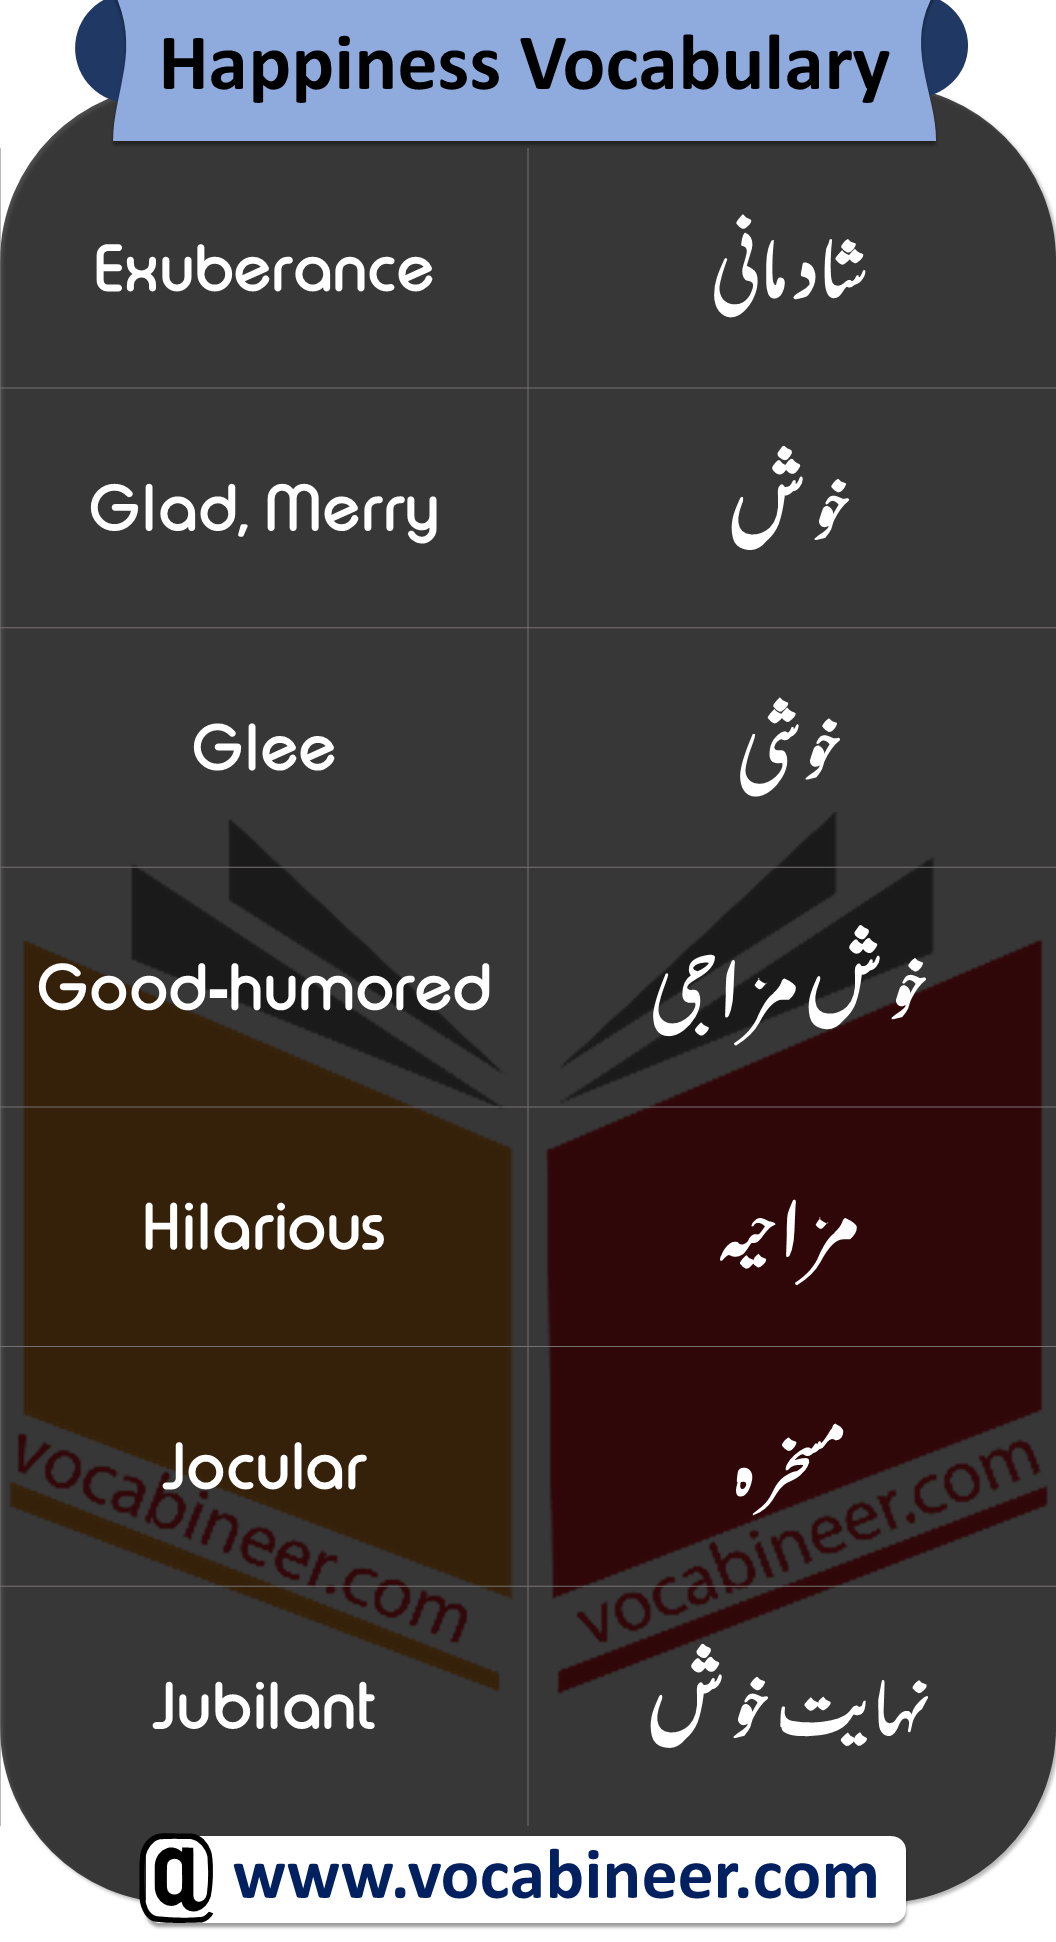 Vocabulary in Urdu about happiness